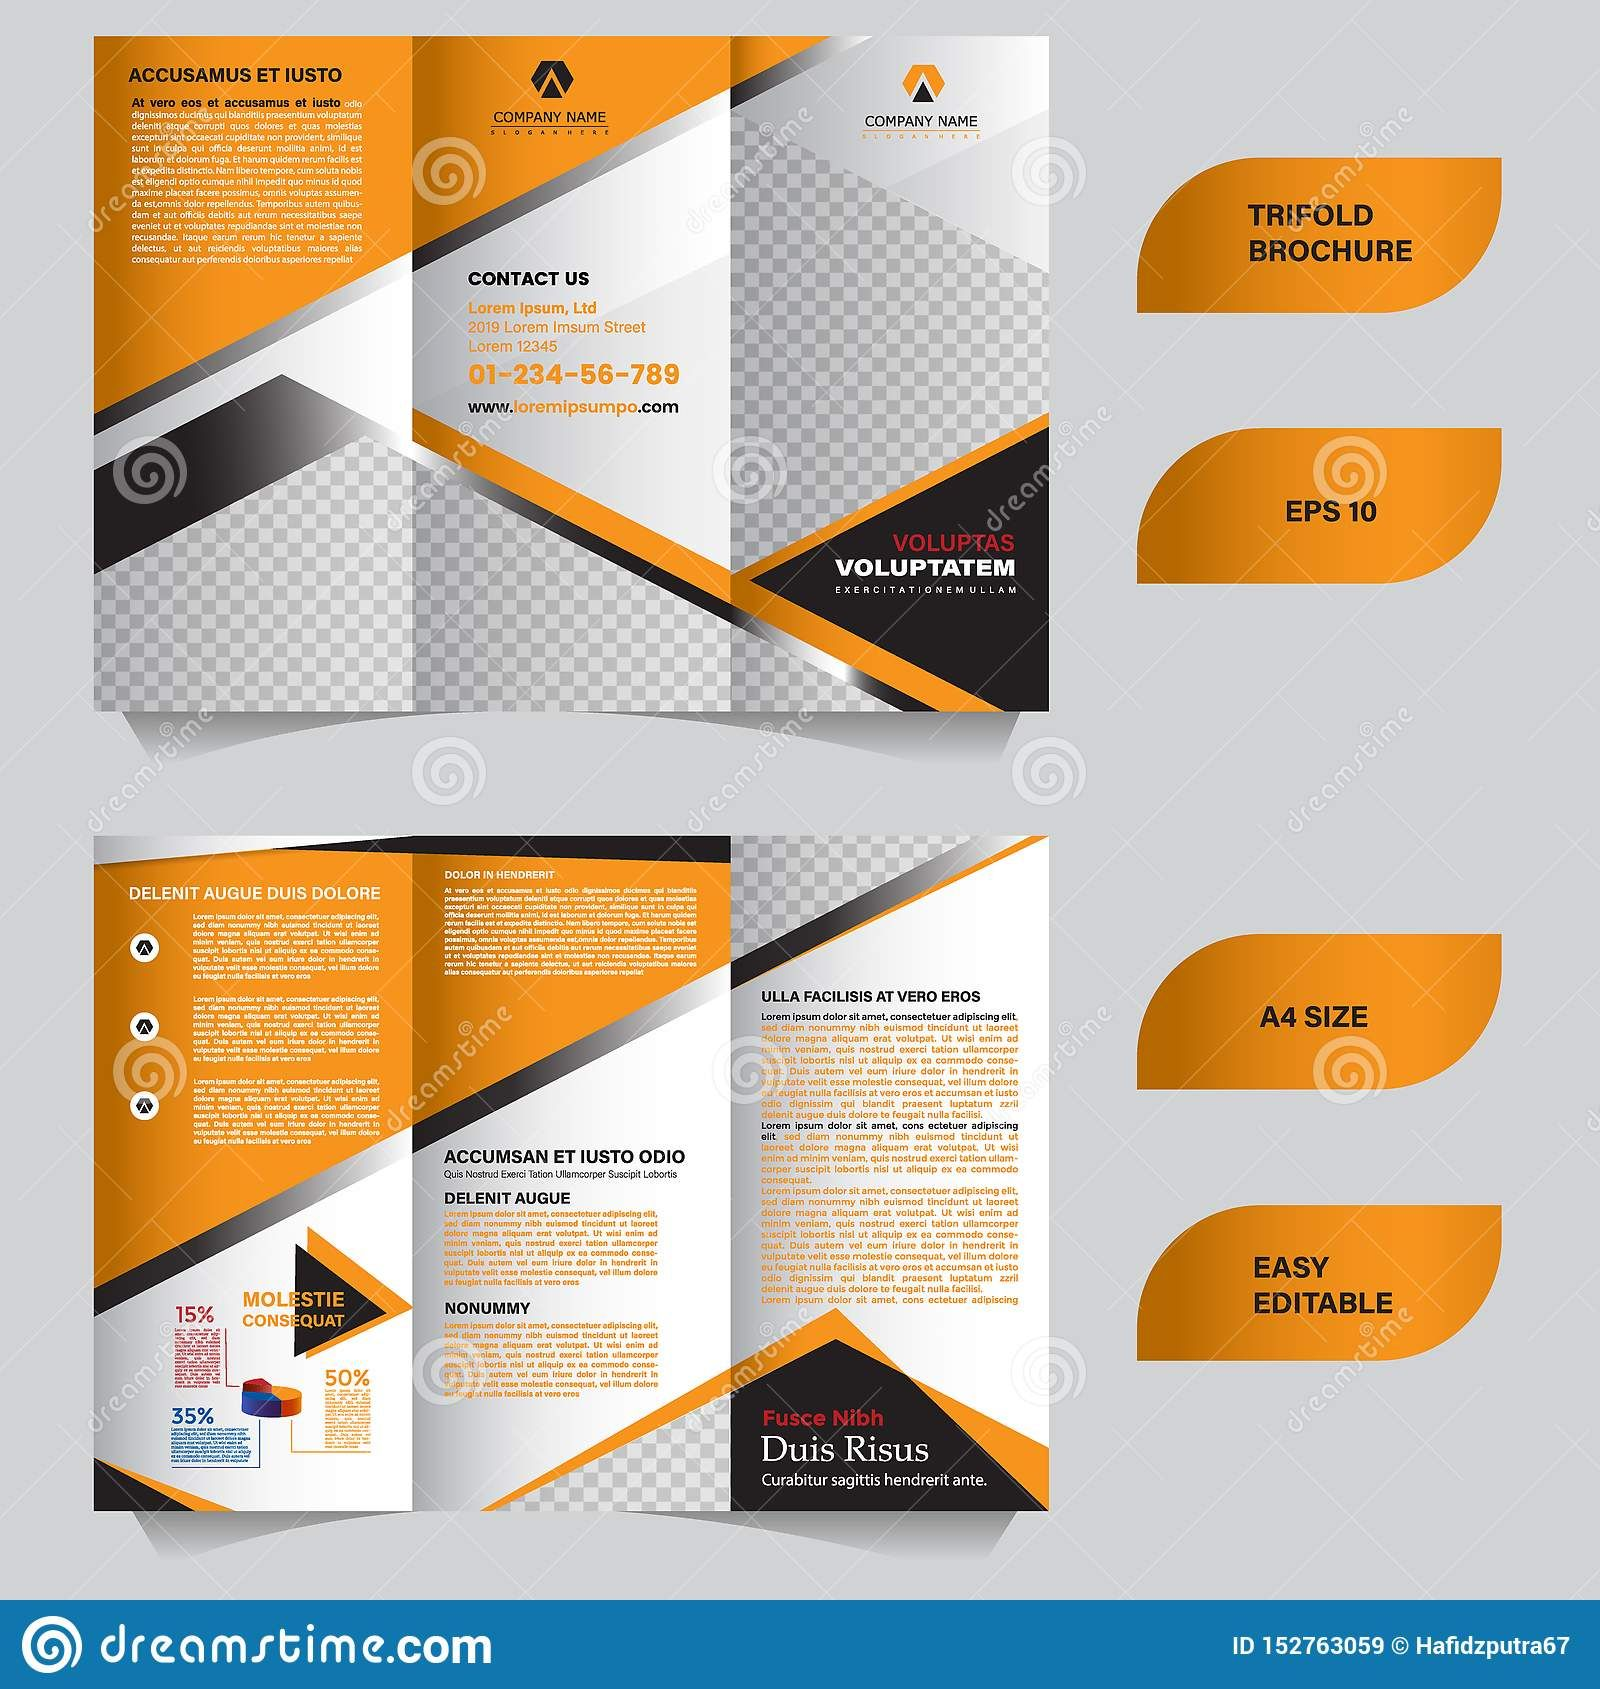 Modern Trifold Brochure Template With Flat And Elegant Pertaining To Tri Fold Brochure Template Il Trifold Brochure Brochure Template Trifold Brochure Template Tri fold brochure template illustrator